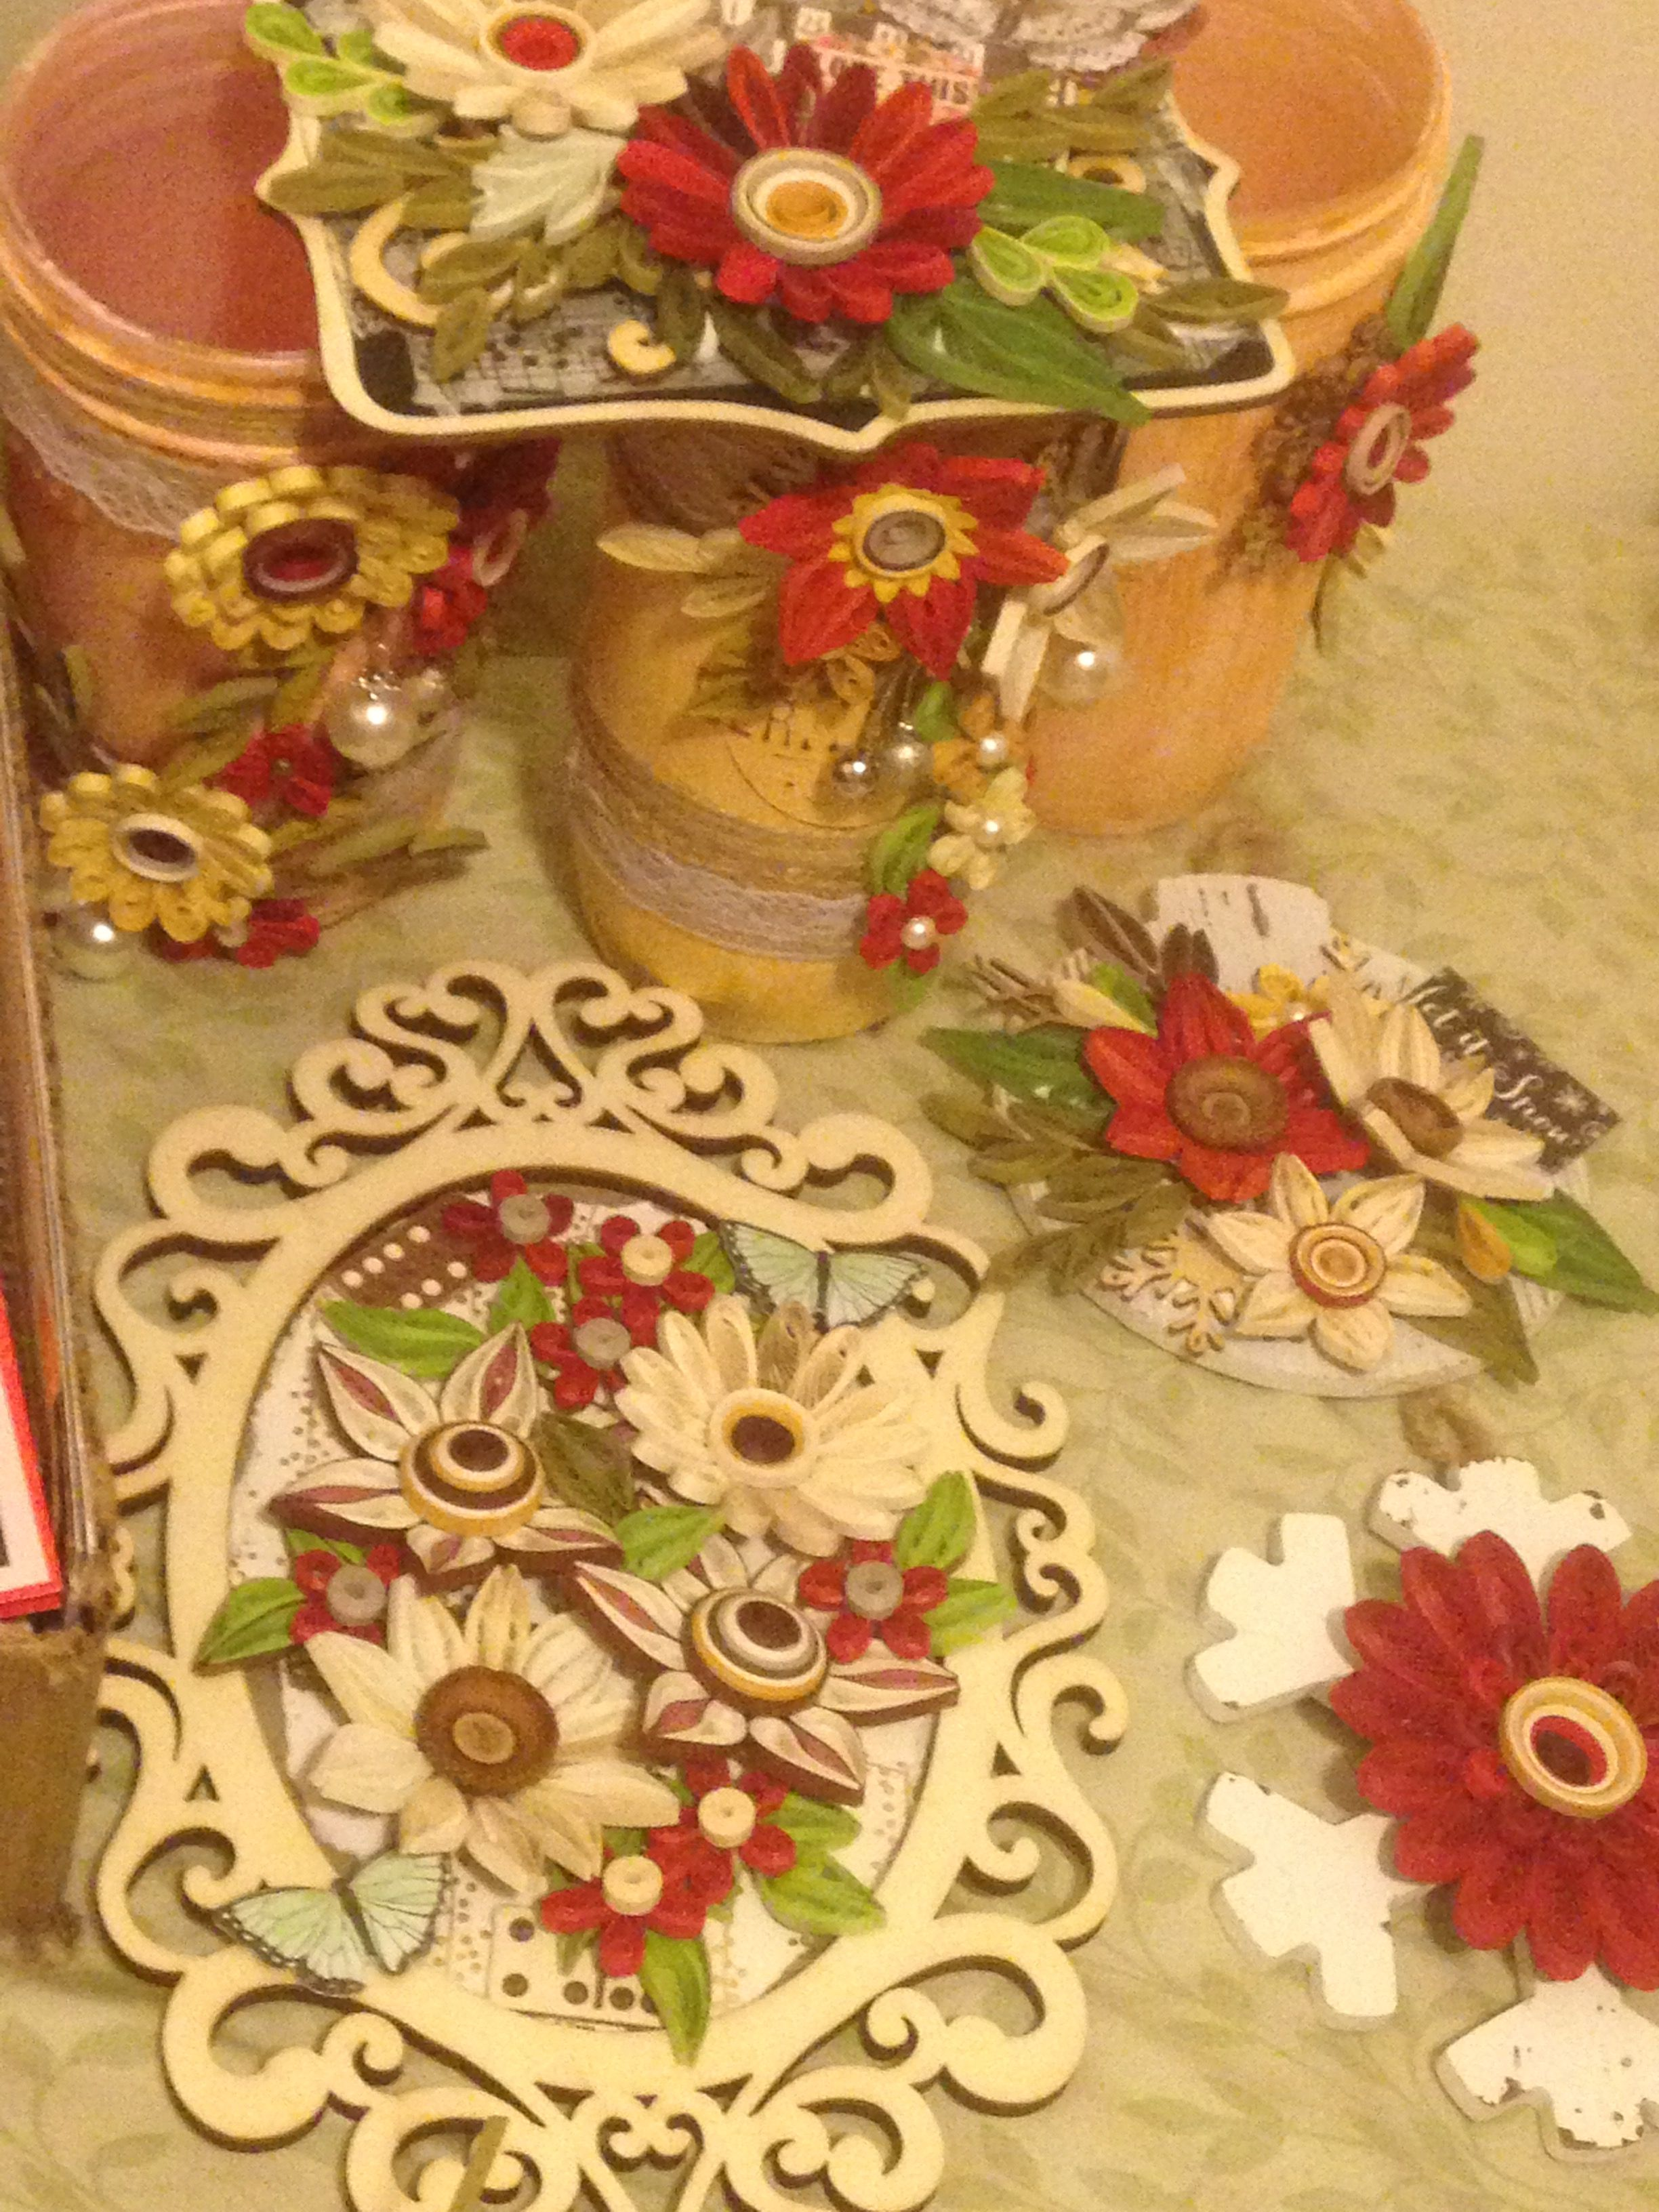 Pin by Emanuela Ilies on Flori | Pinterest | Quilling and Paper quilling